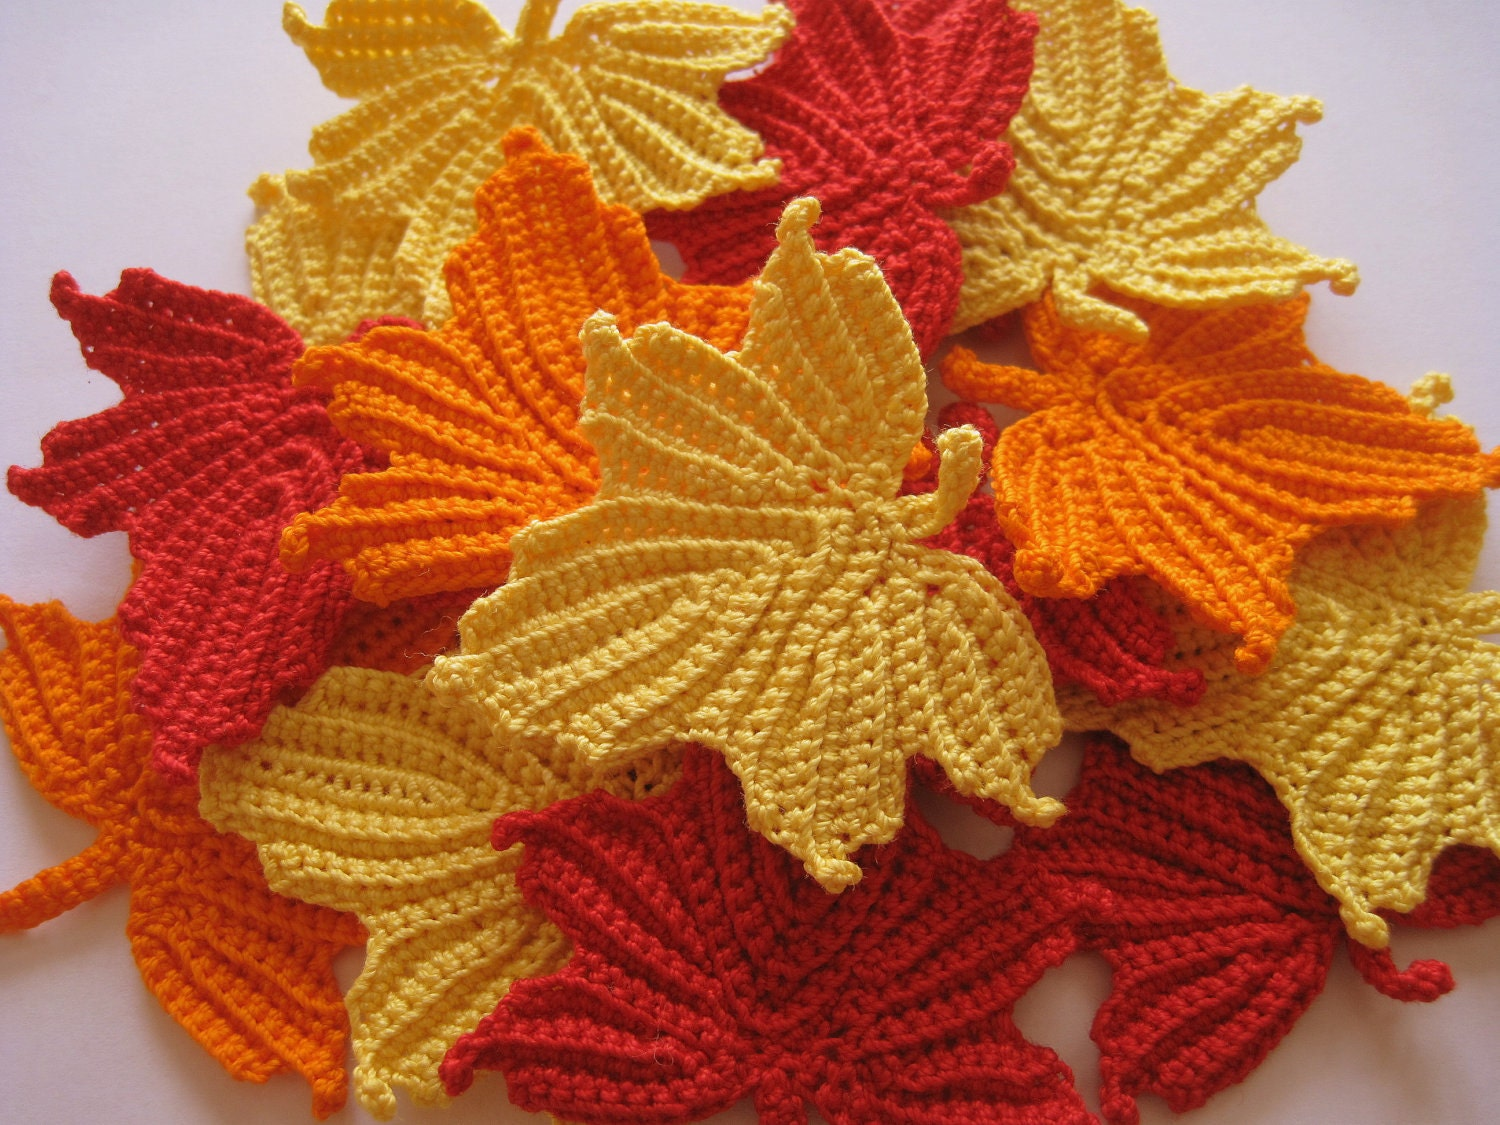 Free crochet patterns for autumn leaves dancox for crocheted maple leaves in red orange and yellow free crochet patterns bankloansurffo Image collections